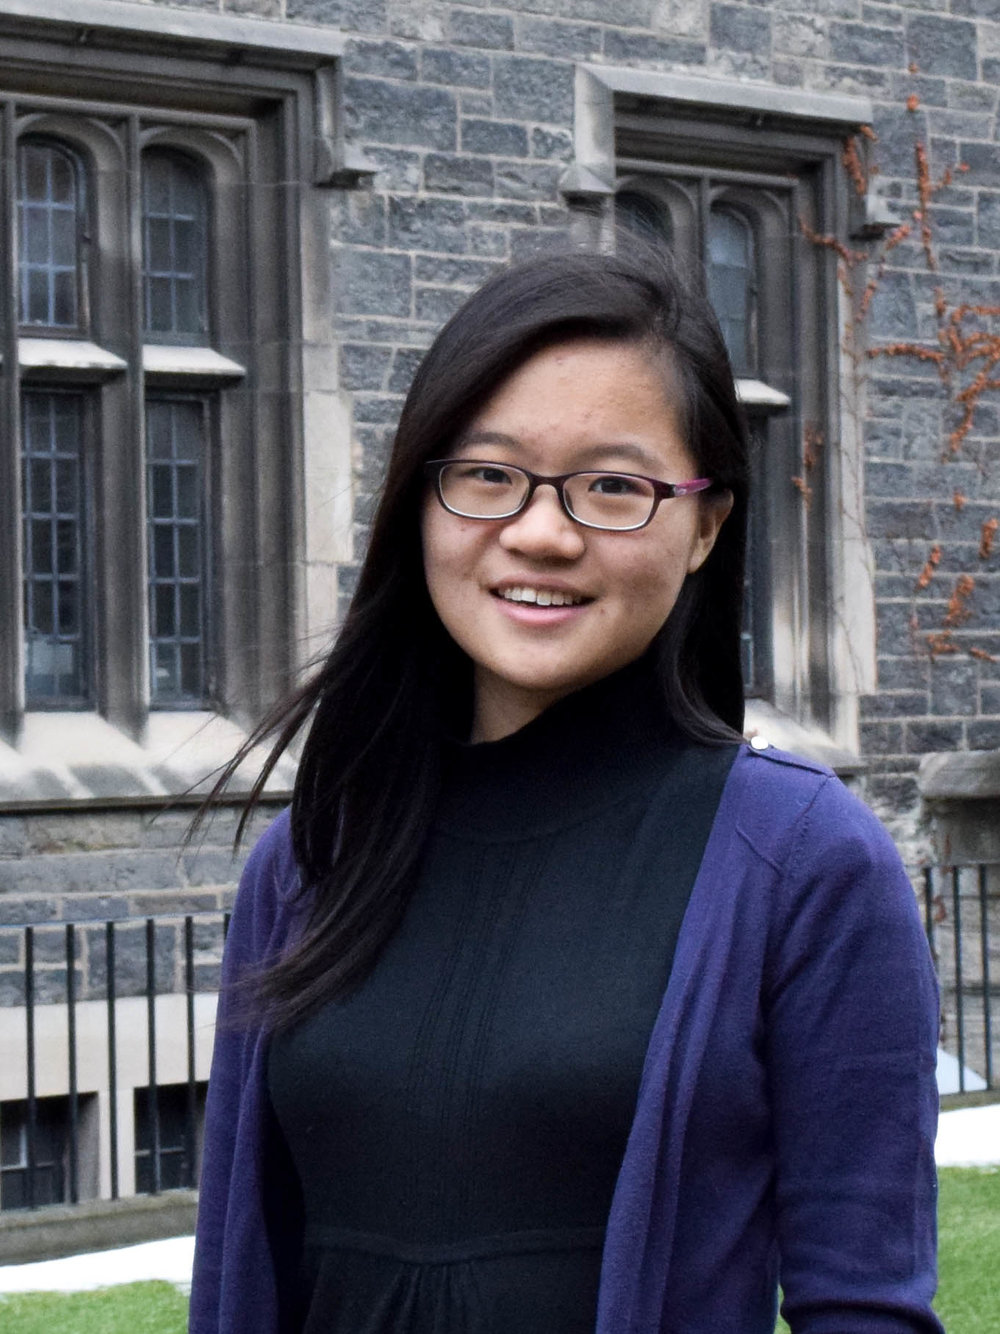 Angela Hou is a current third-year undergraduate student pursuing a double major in International Relations and Contemporary Asian Studies. She is currently serving as the Associate Director of APSS' Junior Mentorship Program. Her main academic interests pertain to East Asian politics, sustainable social development, and the role of international institutions in global governance. When she is not working for APSS, Angela can be found staffing Model UN conferences, working with the Contemporary Asian Studies Student Union, or occasionally consuming Chinese popular culture in isolation.